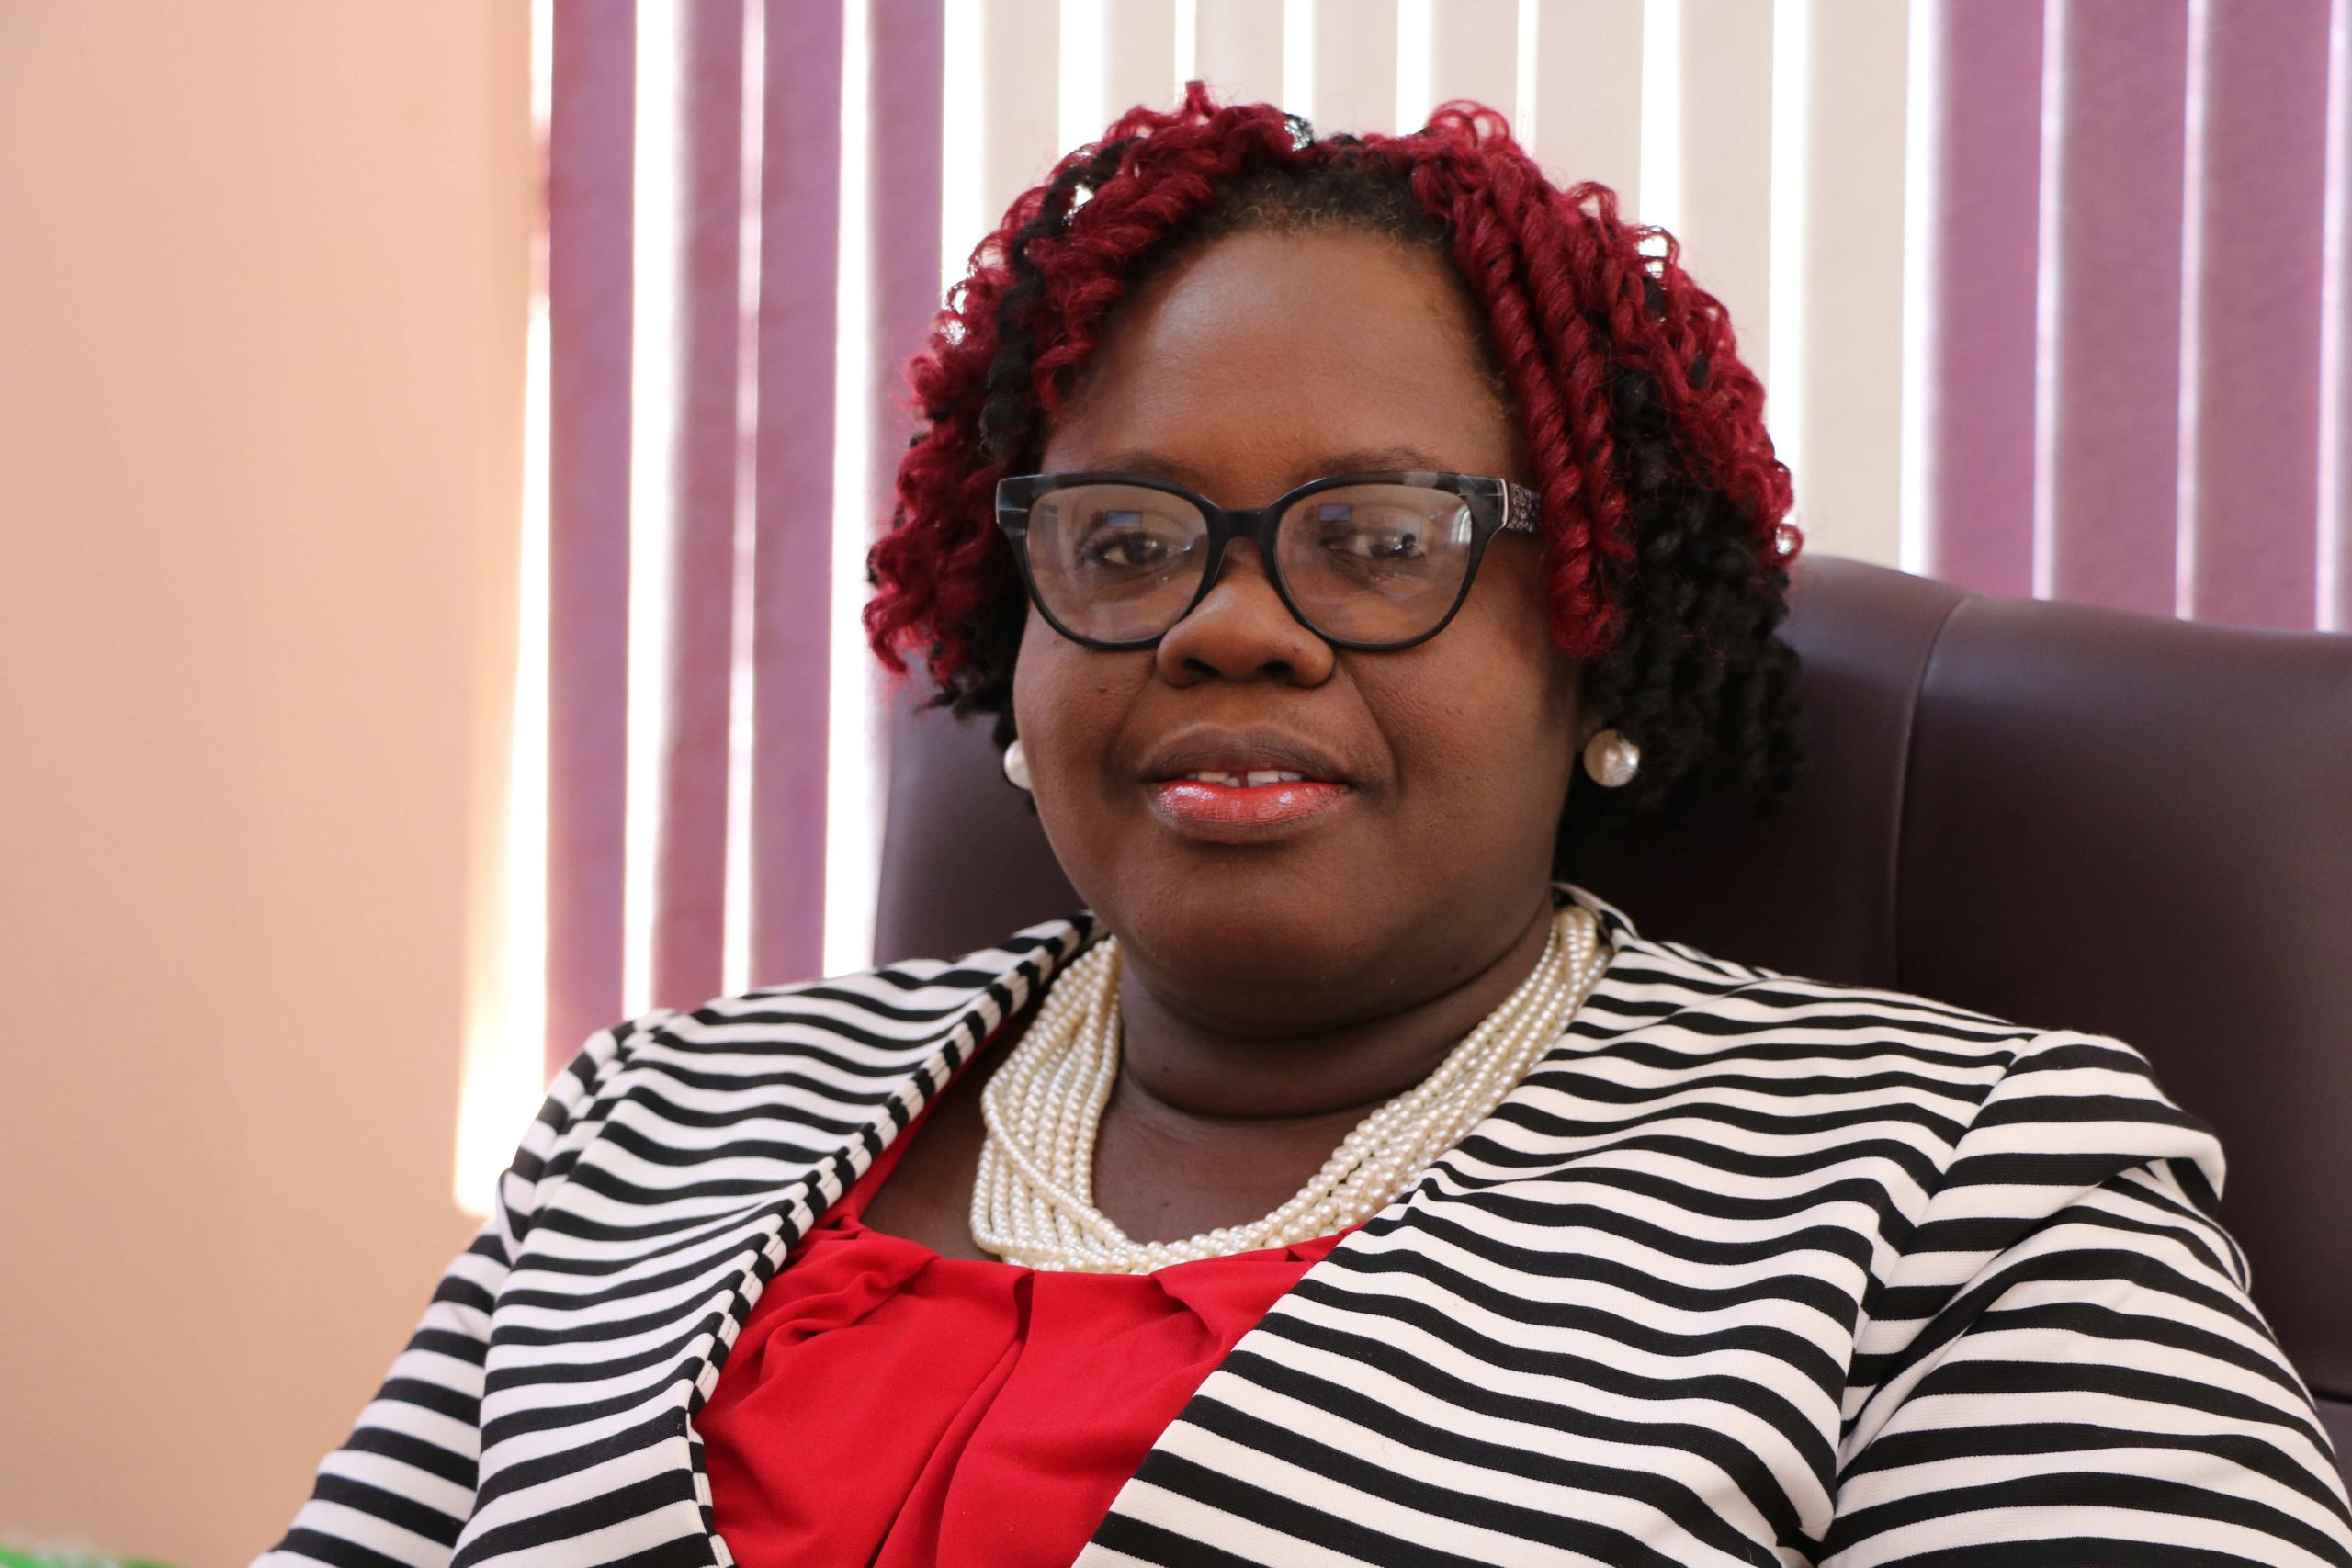 Hon. Hazel Brandy-Williams, Junior Minister of Health in the Nevis Island Administration at her office in Charlestown on January 26, 2021